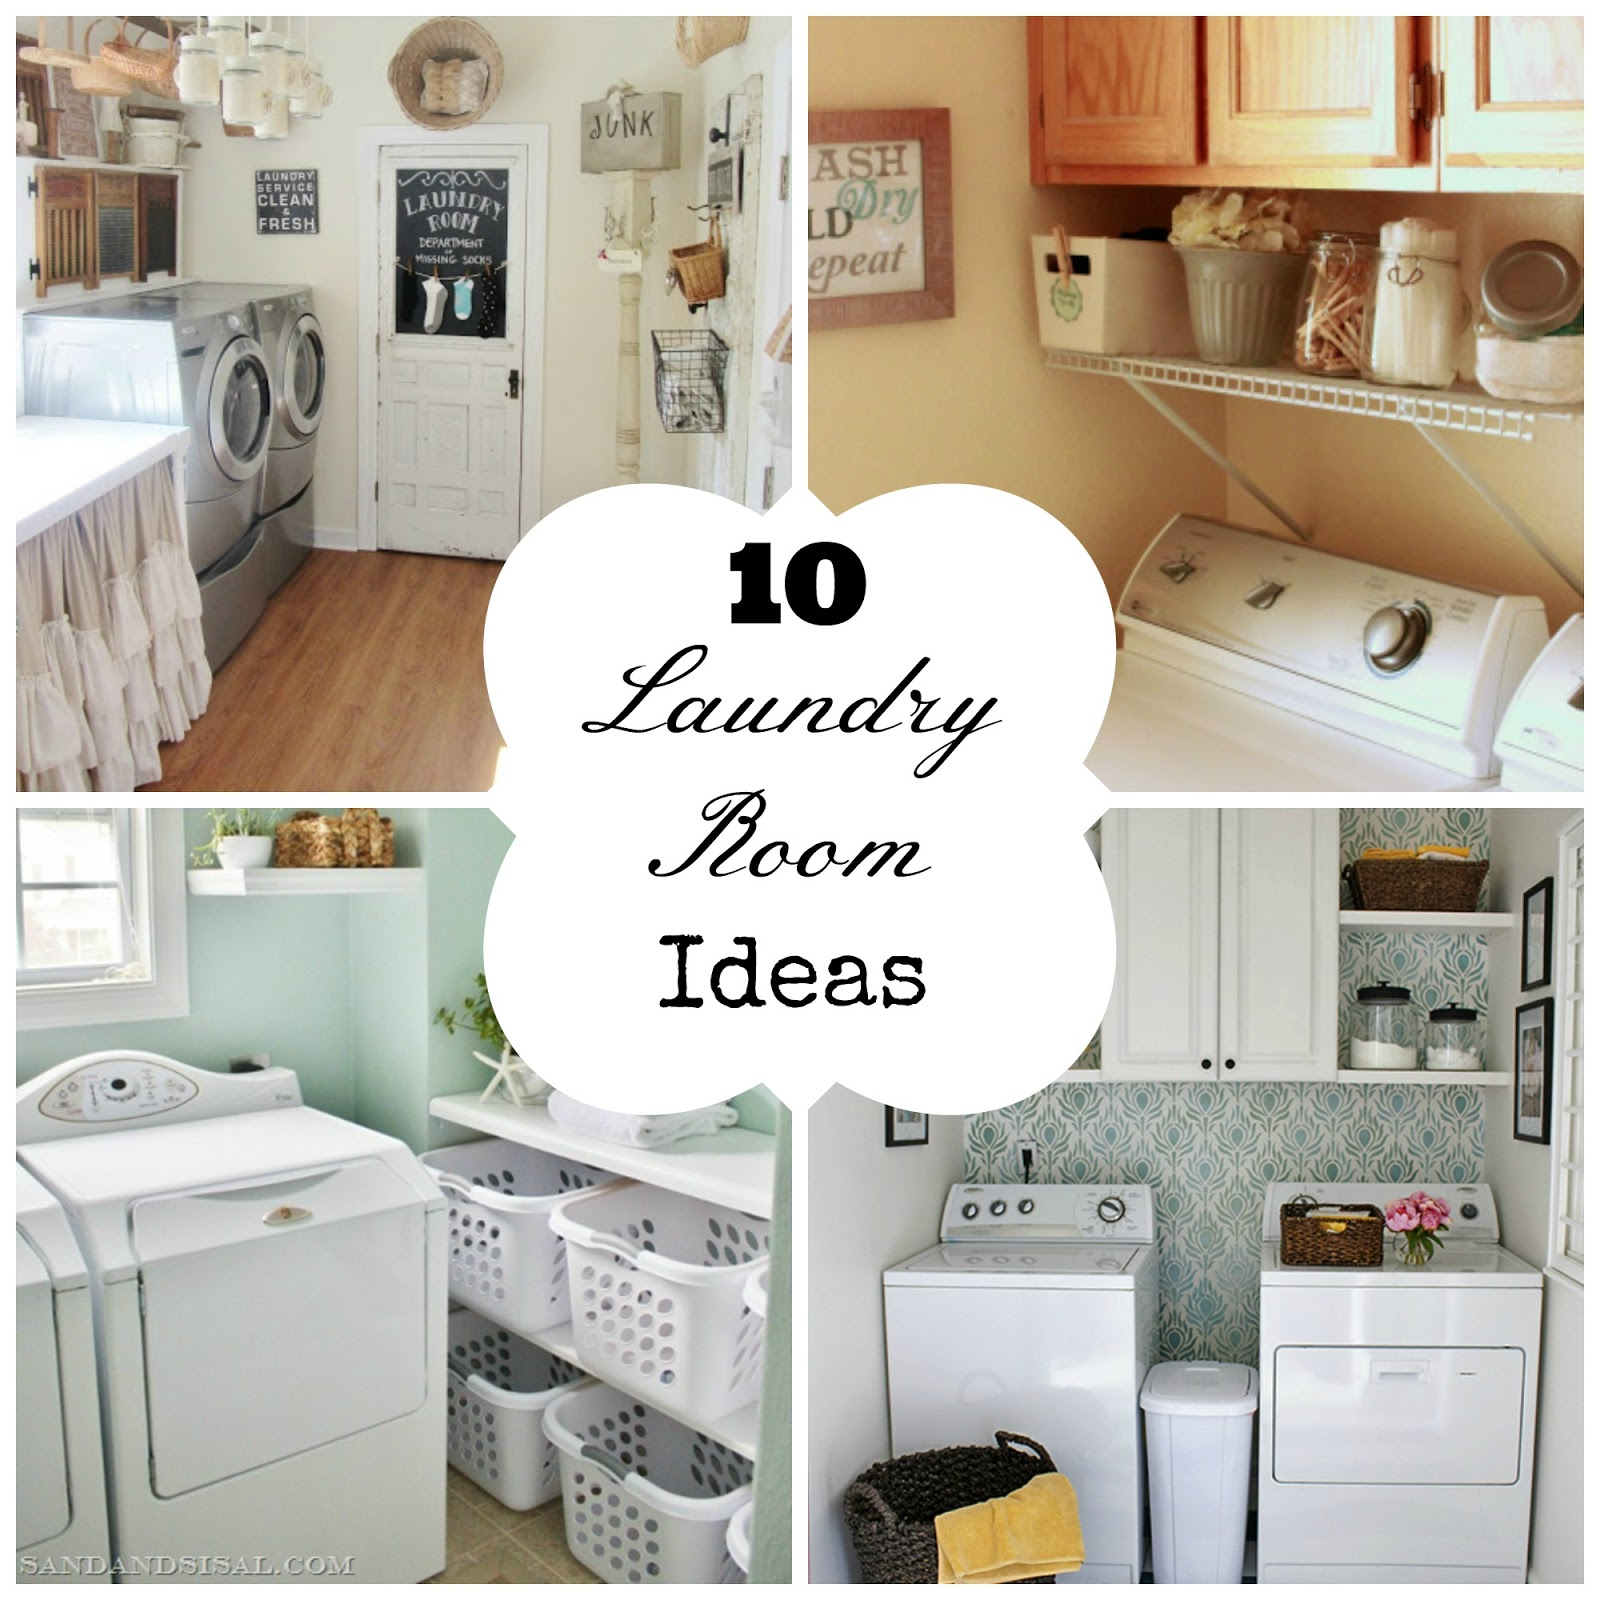 10 Laundry Room Ideas Part 29